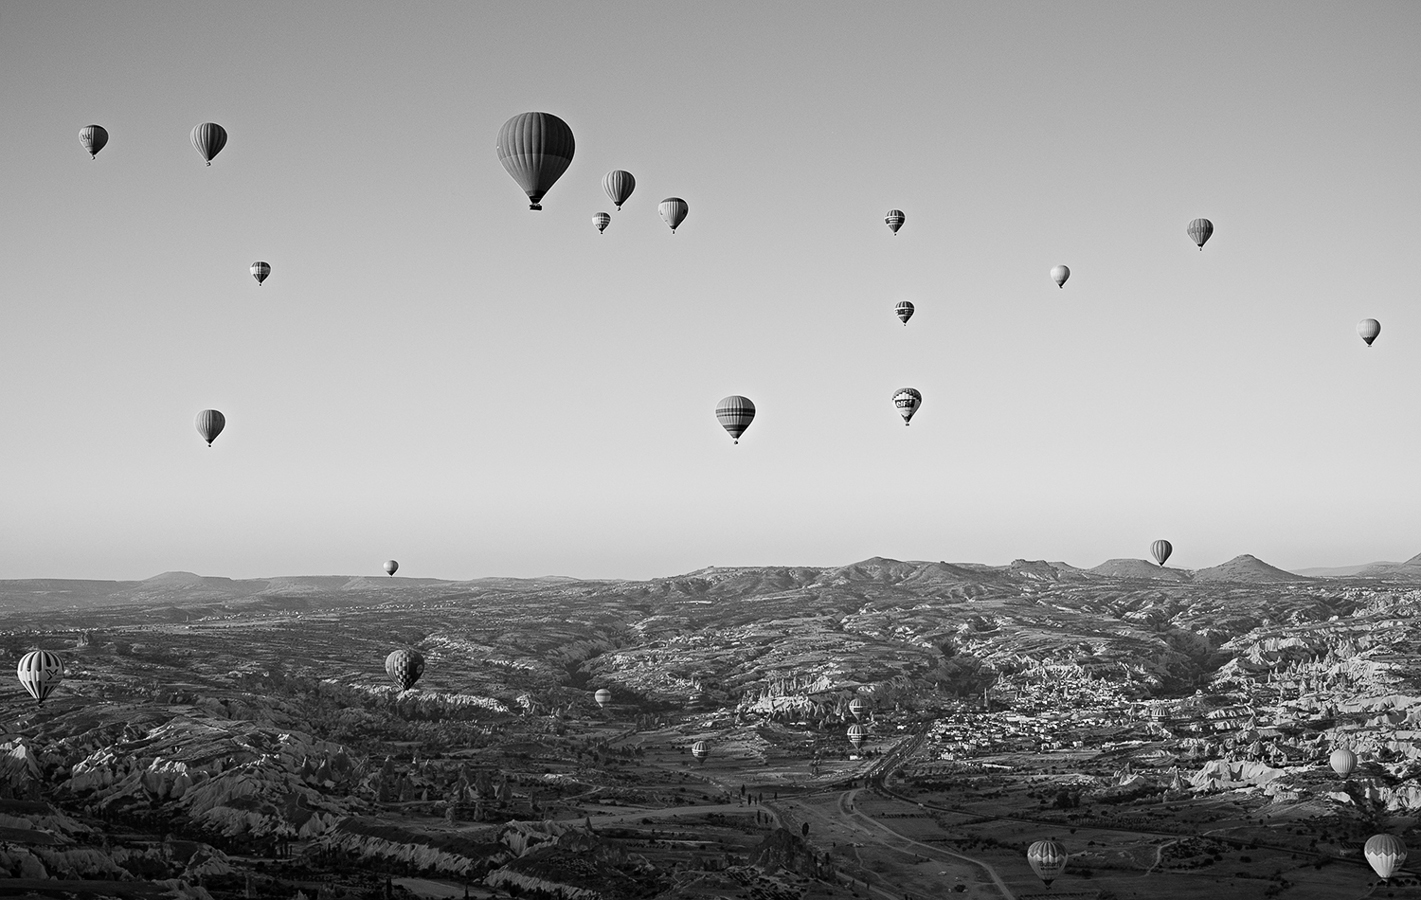 capadocia-hot-air-baloons.jpg